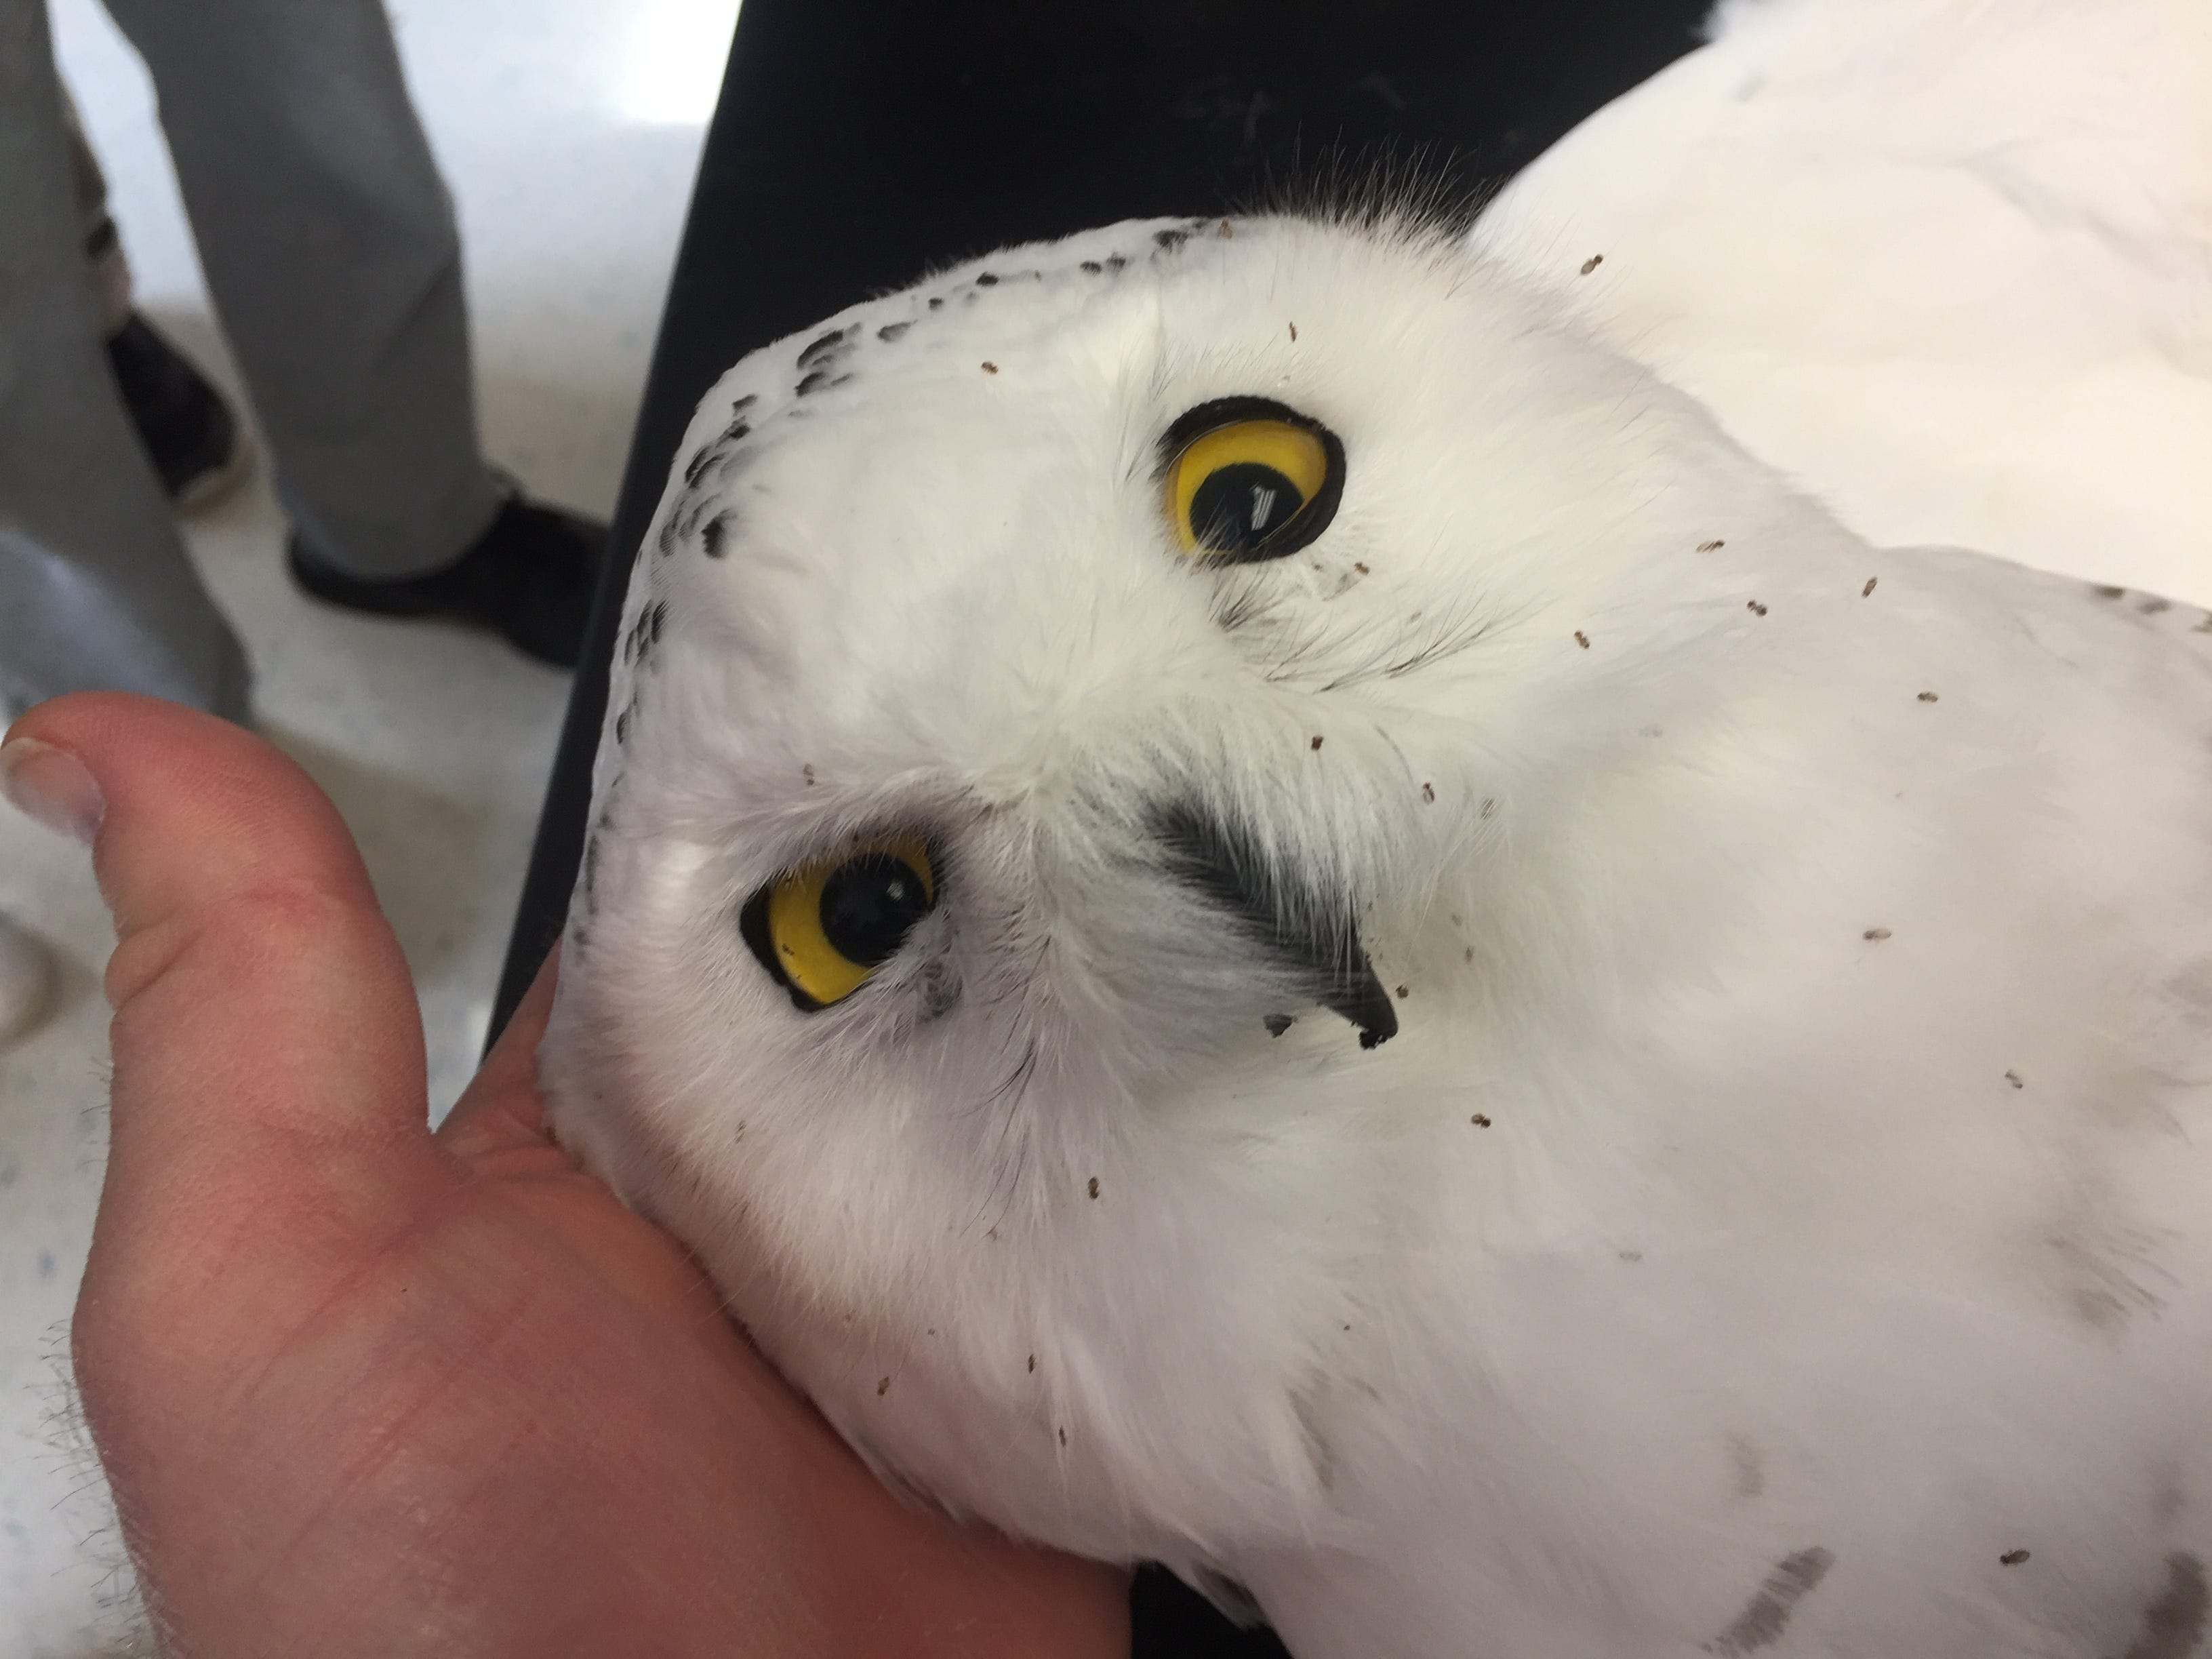 Taxidermist Jeff Herrick specially ordered the eyes of the snowy owl from Canada to make sure they would be the right size and color. The snowy owl now lives at the high school campus of Sheboygan Christian.